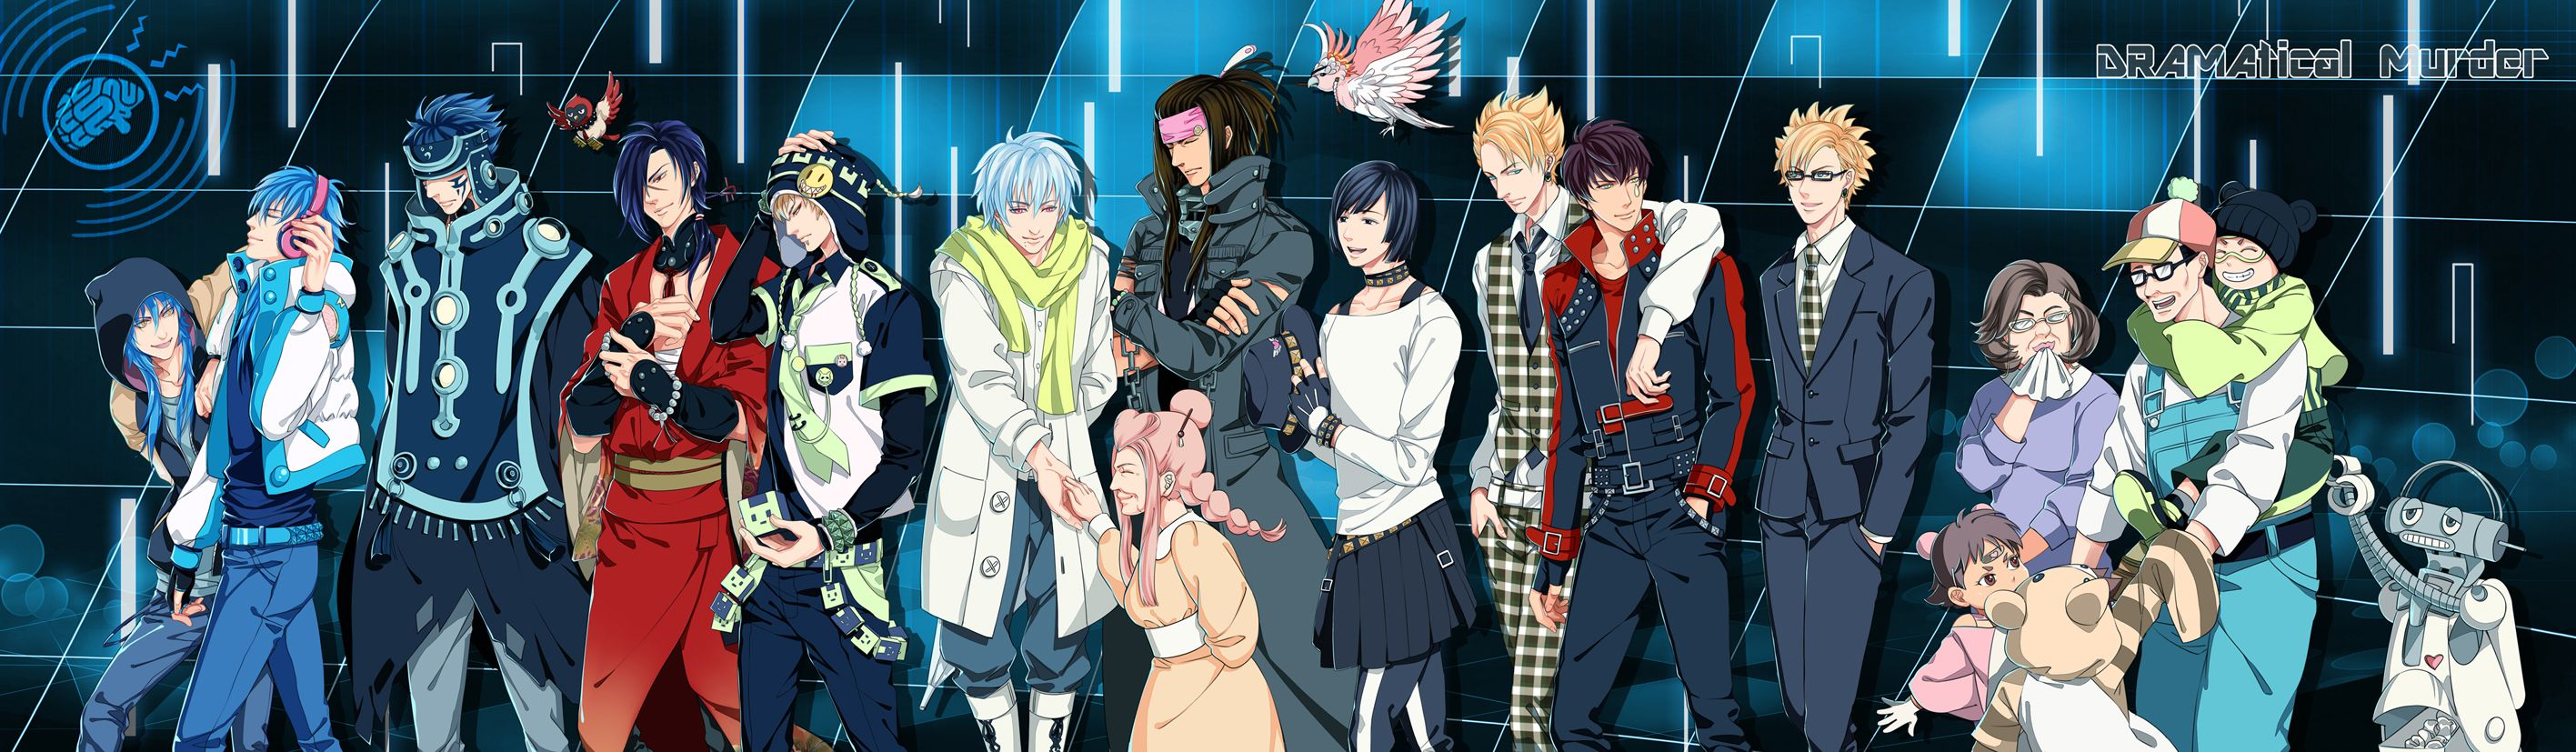 Tags: Fanart, Pixiv, Character Request, Nitro+CHiRAL ...